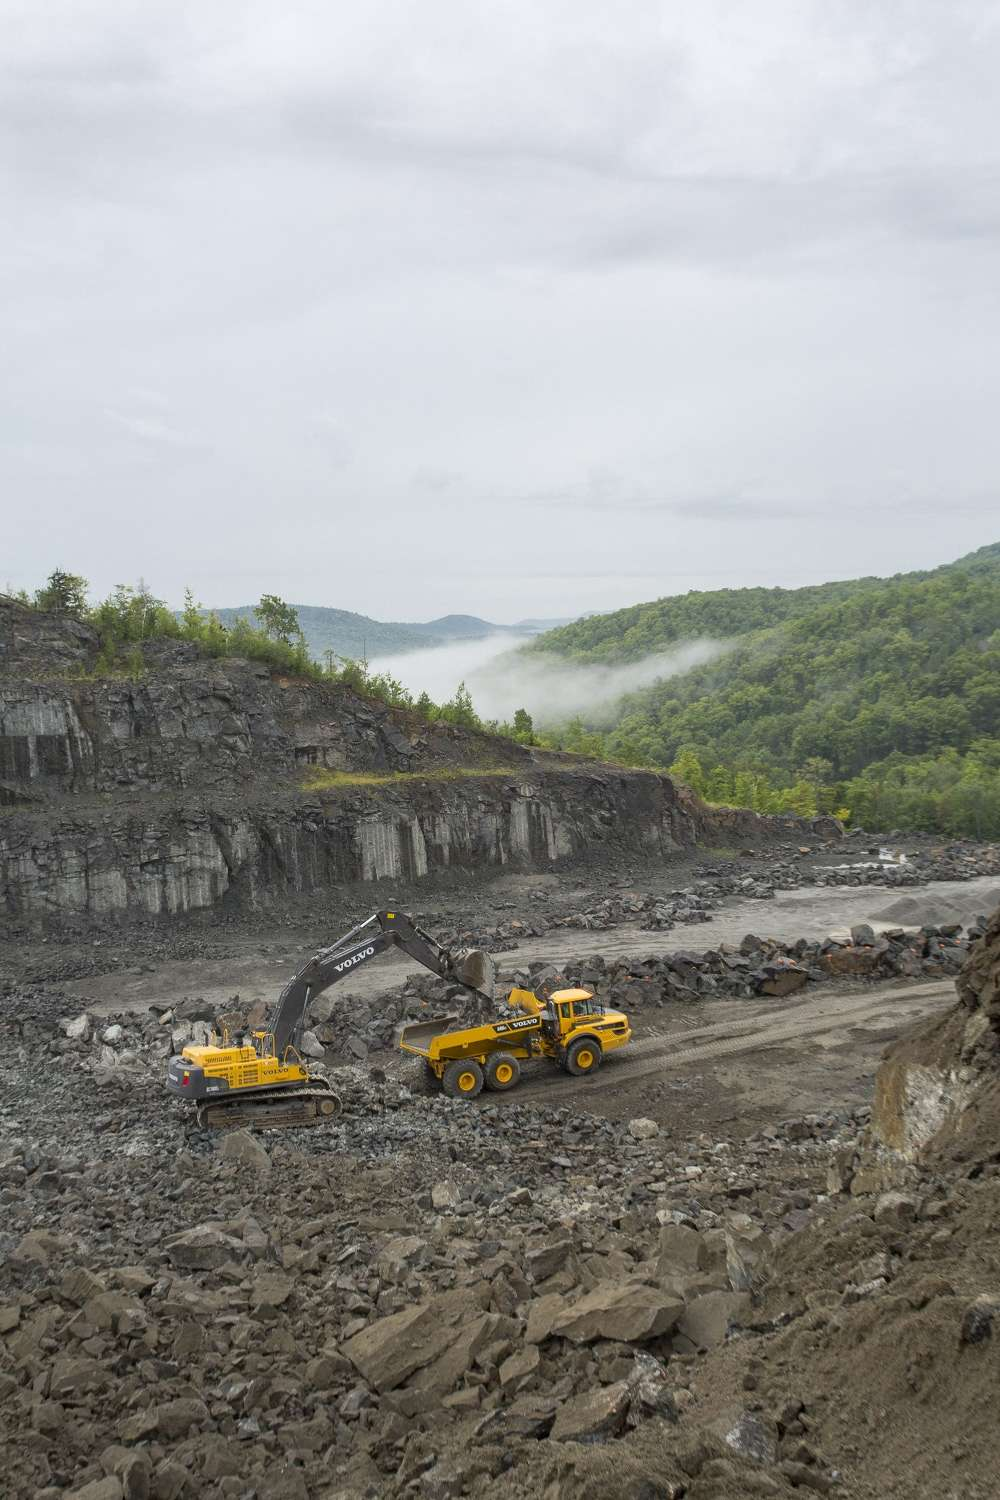 A Volvo excavator and articulated hauler work together on the Barton mine.